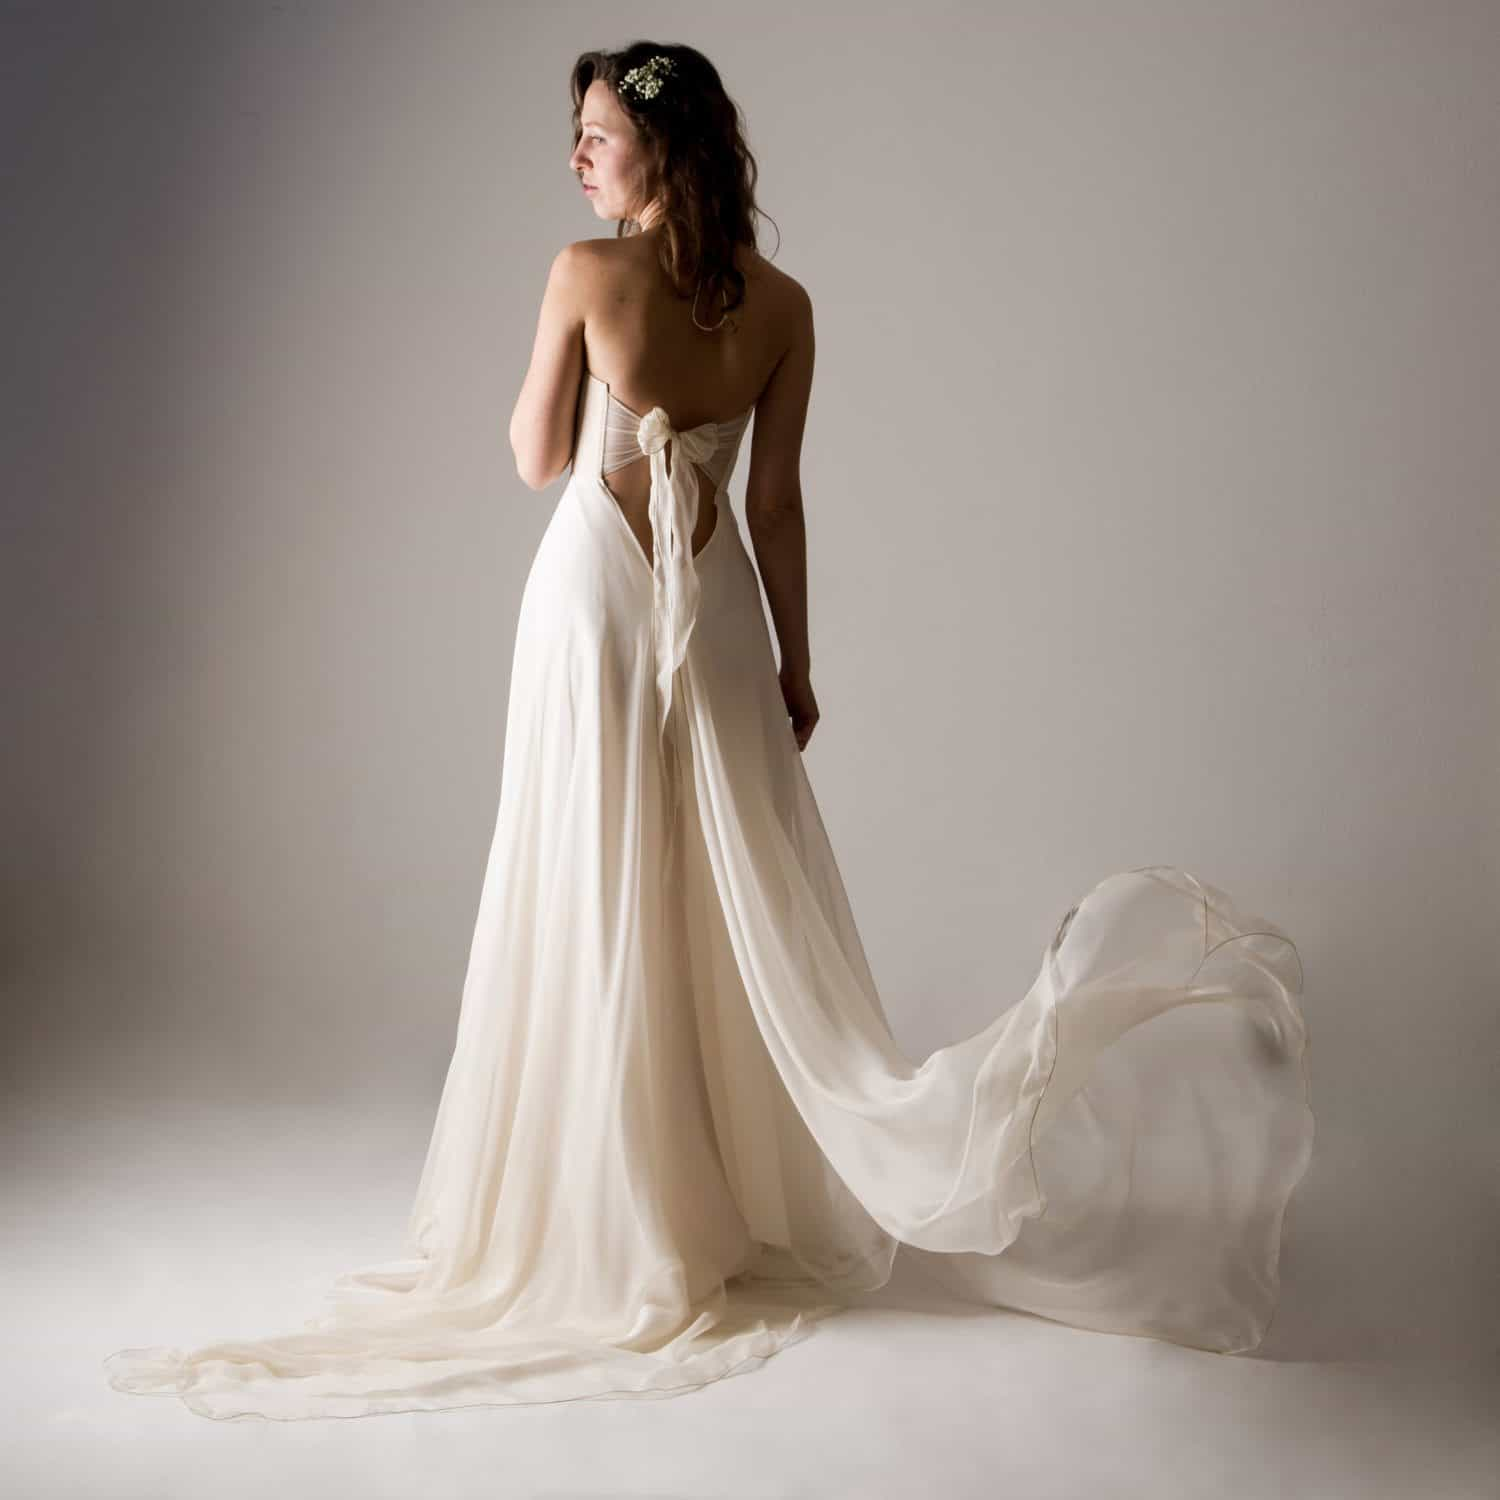 52 perfect low back wedding dresses backless wedding dresses Essense of Australia backless mermaid wedding dress